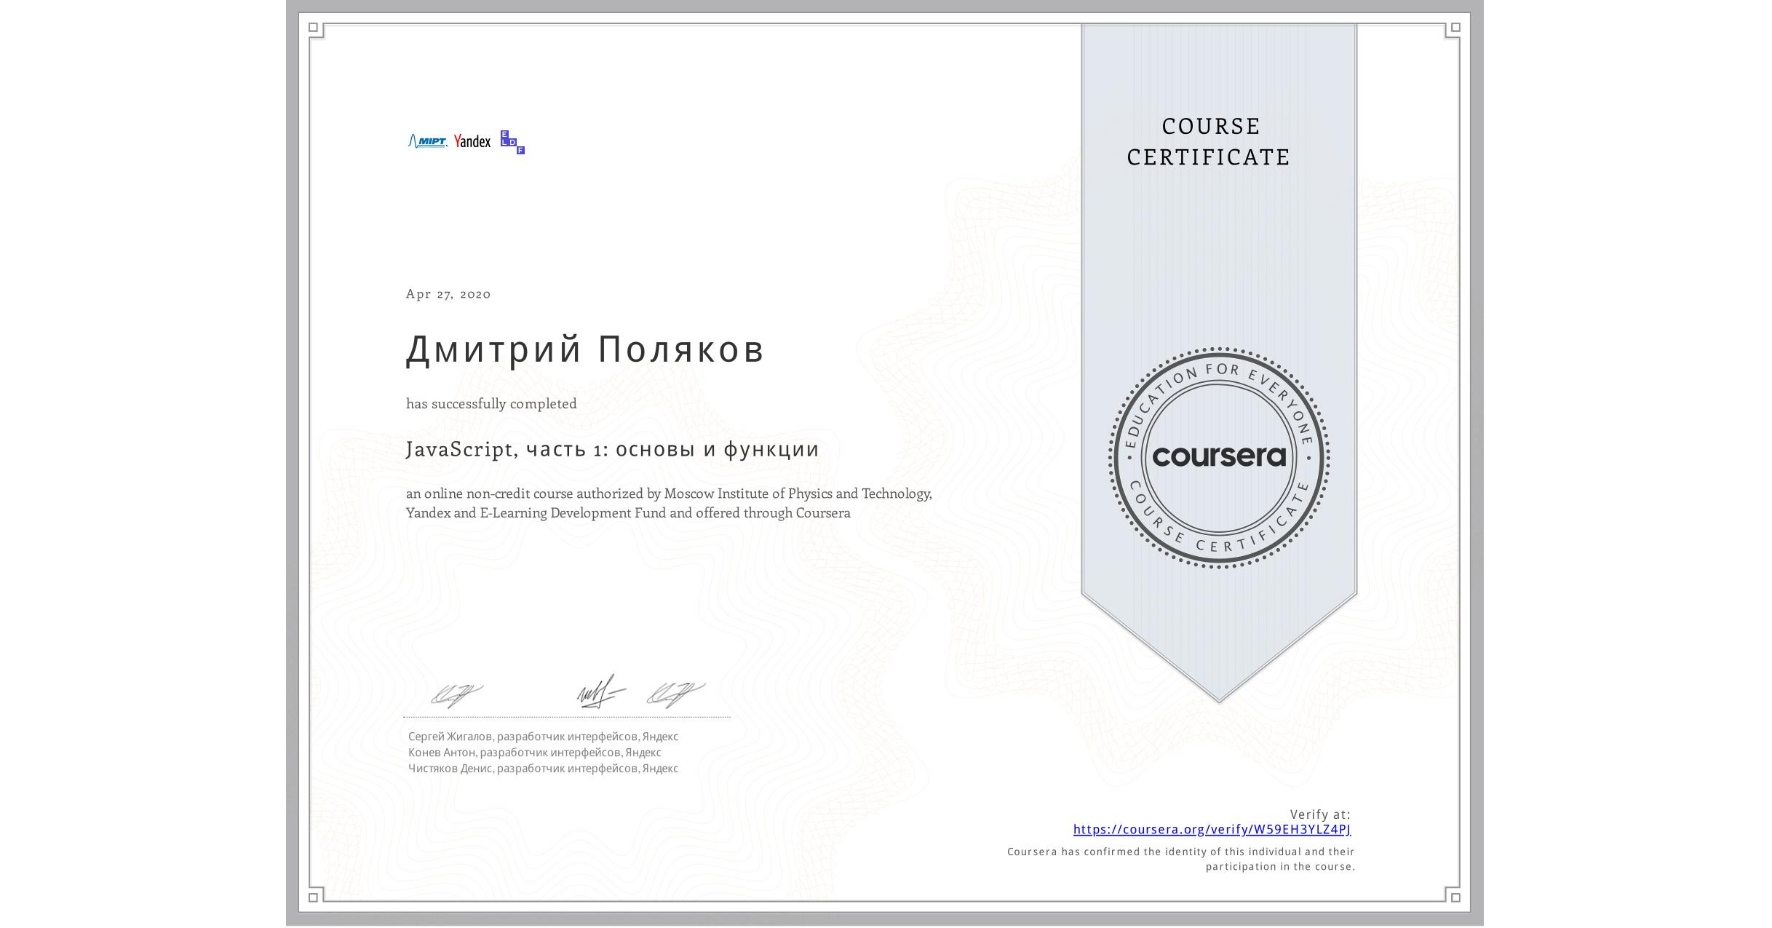 View certificate for Дмитрий Поляков, JavaScript, часть 1: основы и функции, an online non-credit course authorized by Moscow Institute of Physics and Technology, Yandex & E-Learning Development Fund and offered through Coursera